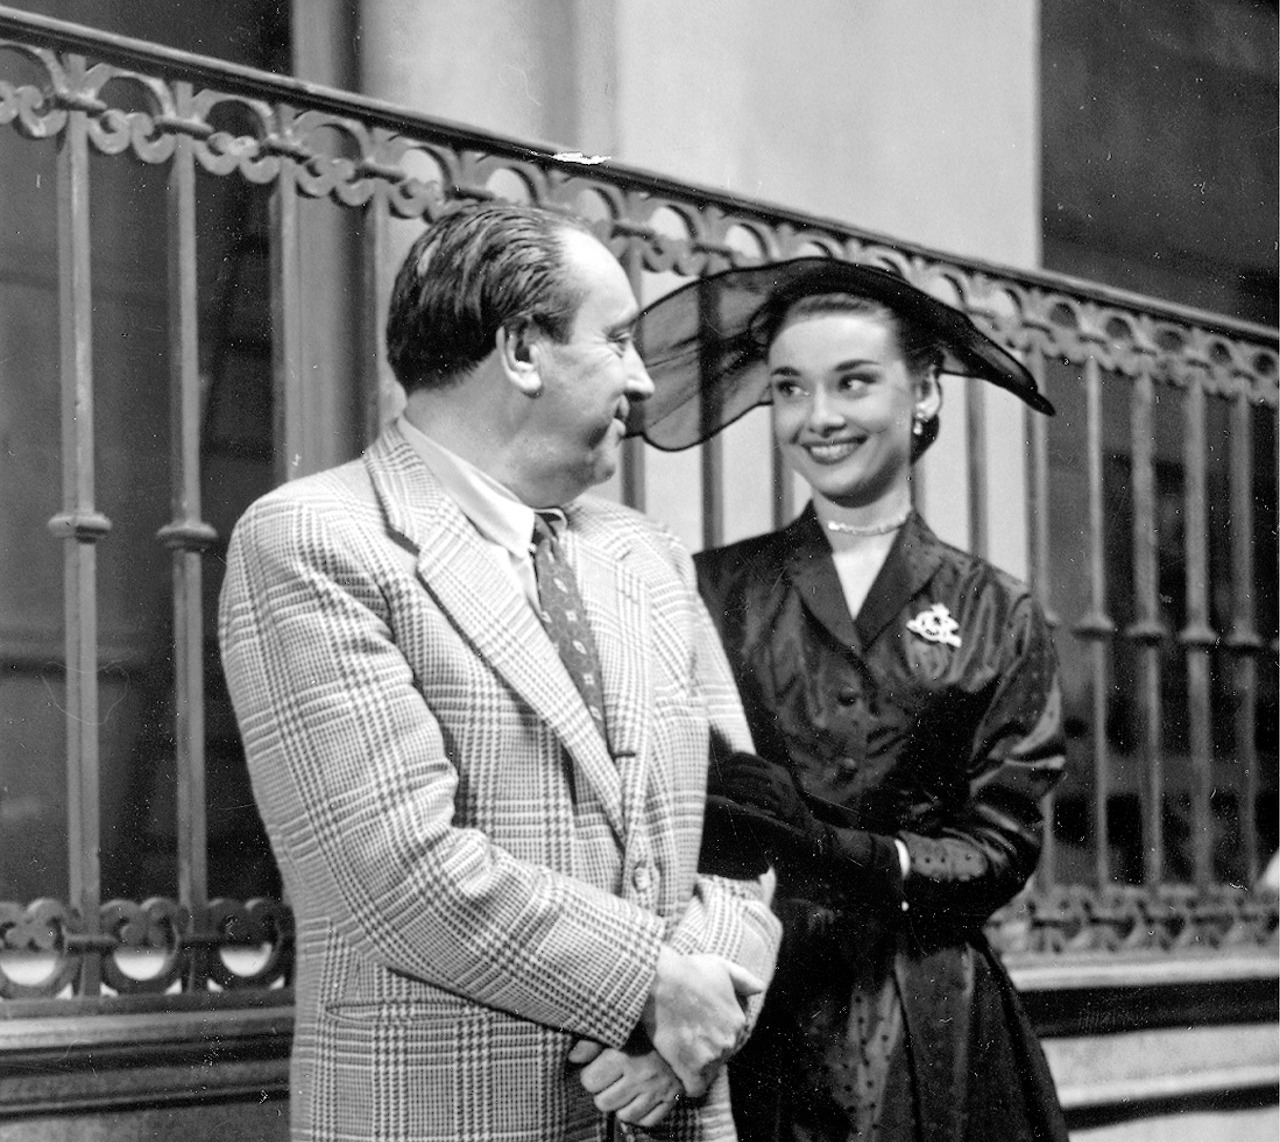 Audrey Hepburn and Michał Waszyński on the set of Roman Holiday in Rome, Italy, 1952.